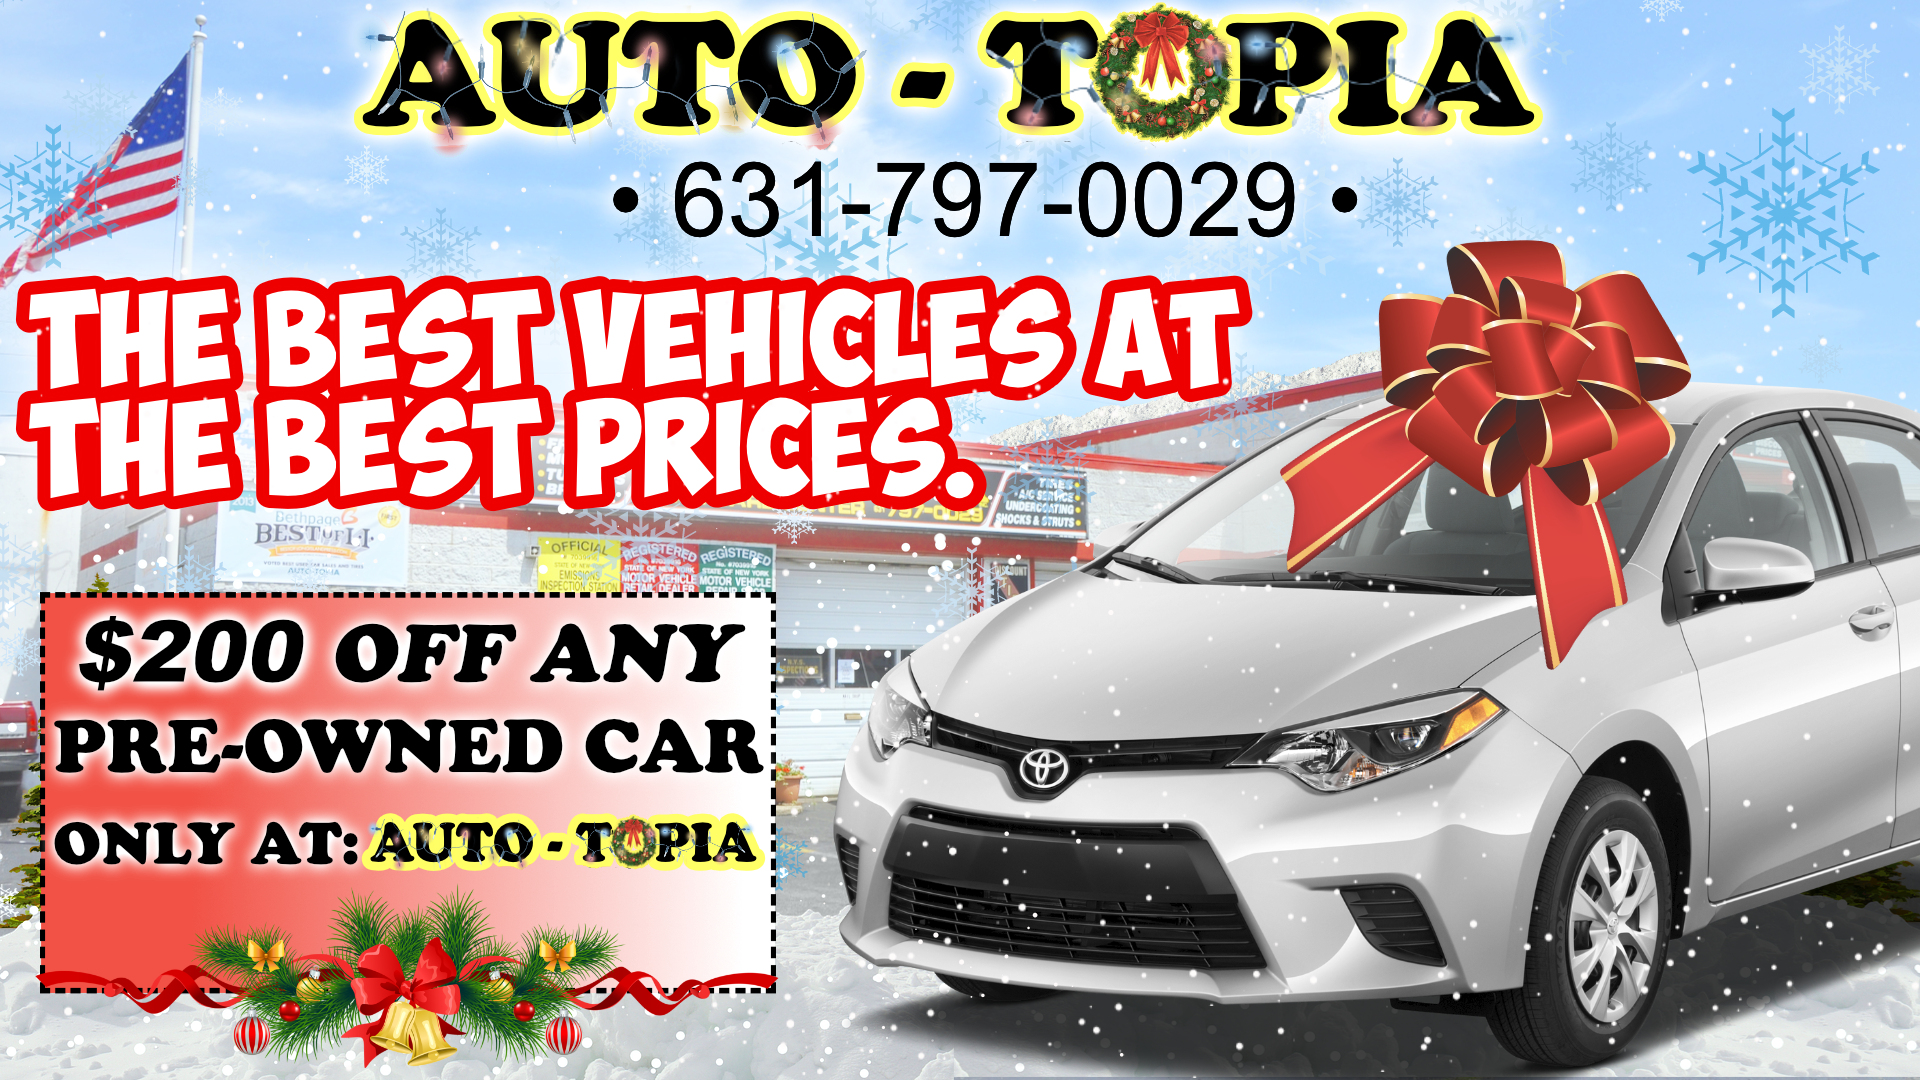 Auto-Topia Used Car AD